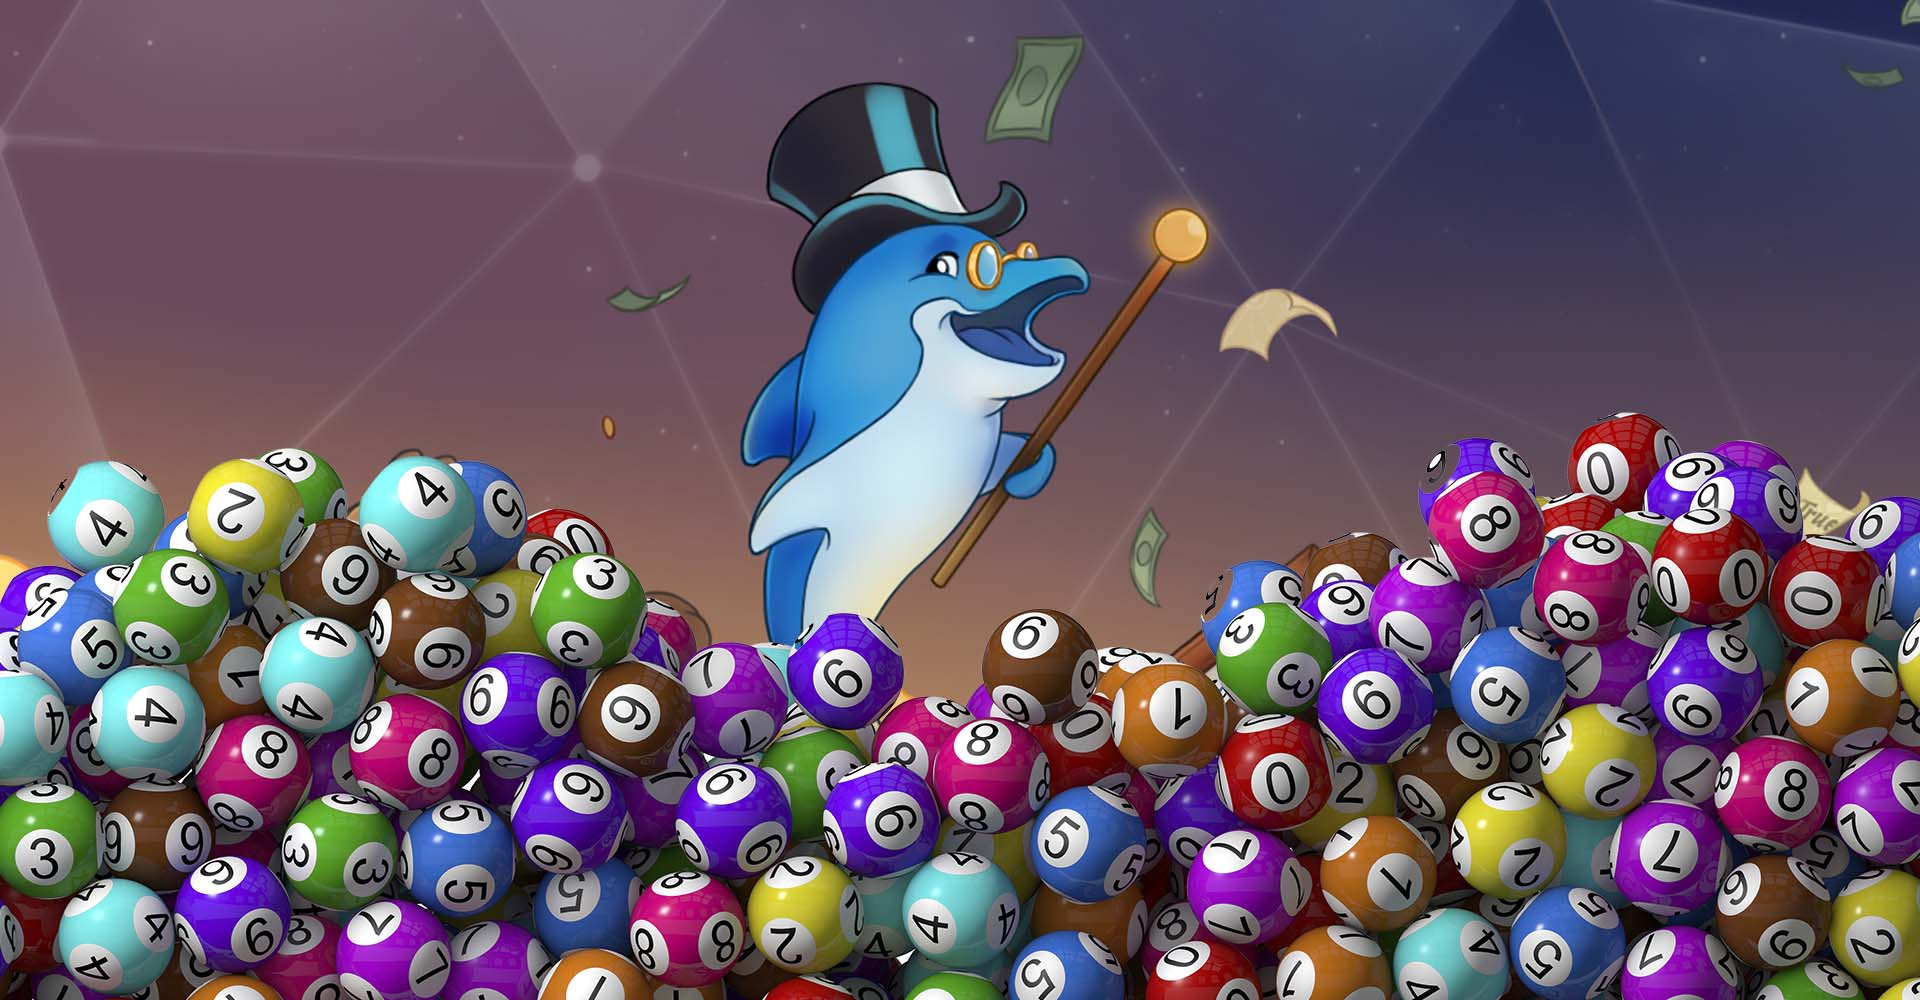 Blockchain Lottery TrueFlip Launches Crowdsale, Raises 1225 BTC Within Hours